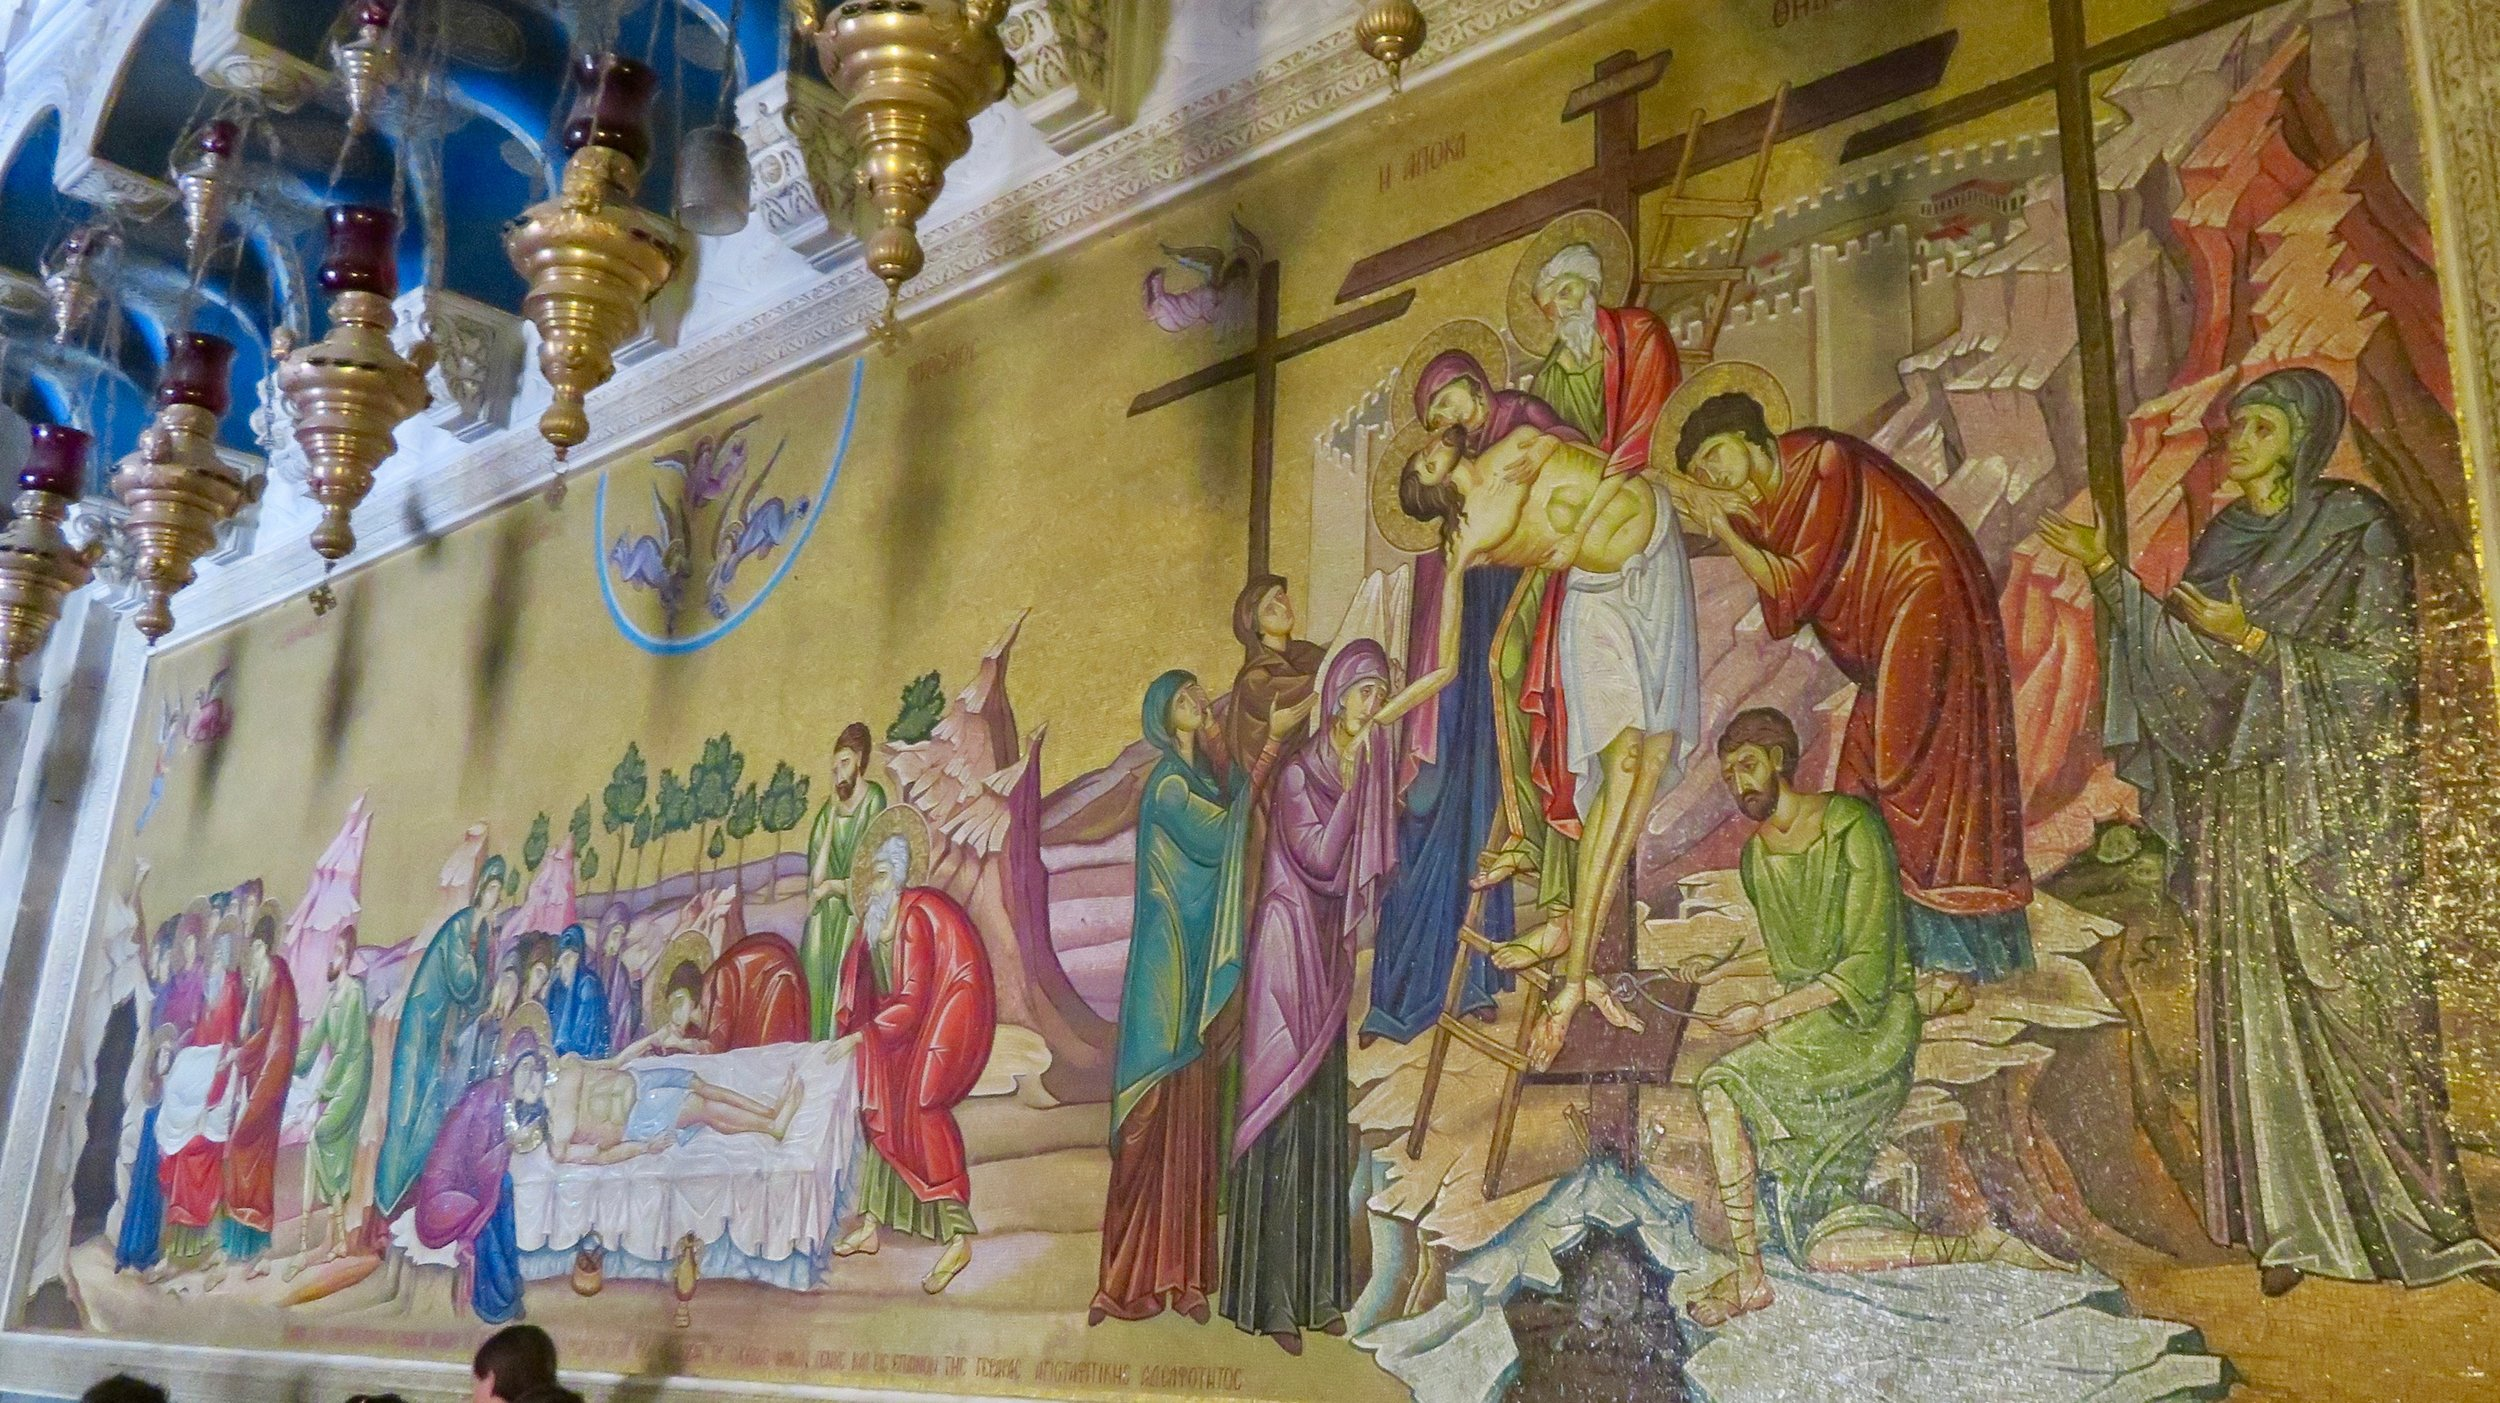 Mosaic depicting the crucifixion and burial of Jesus in the Church of the Holy Sepulchre.